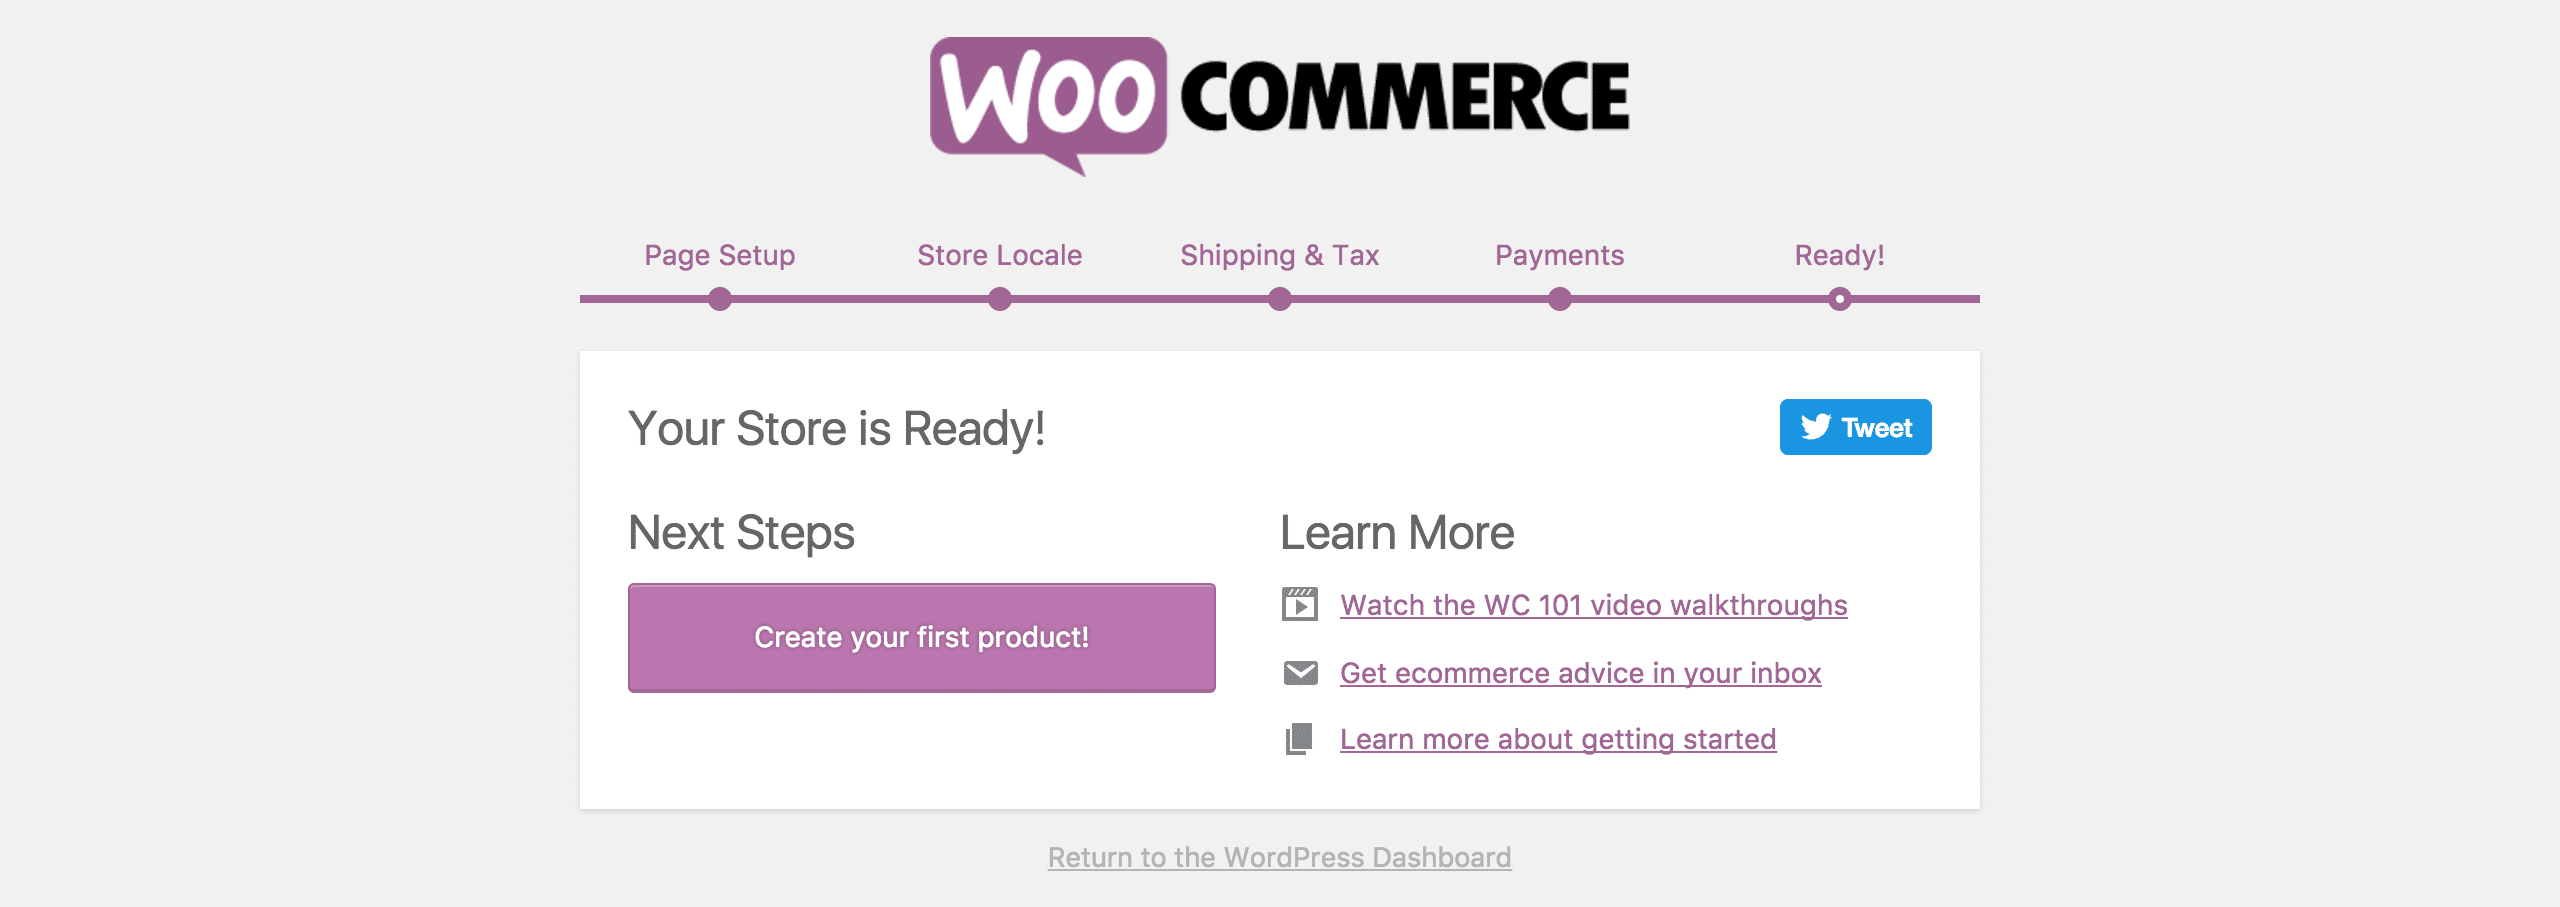 Congratulations, you've set up your WooCommerce store!